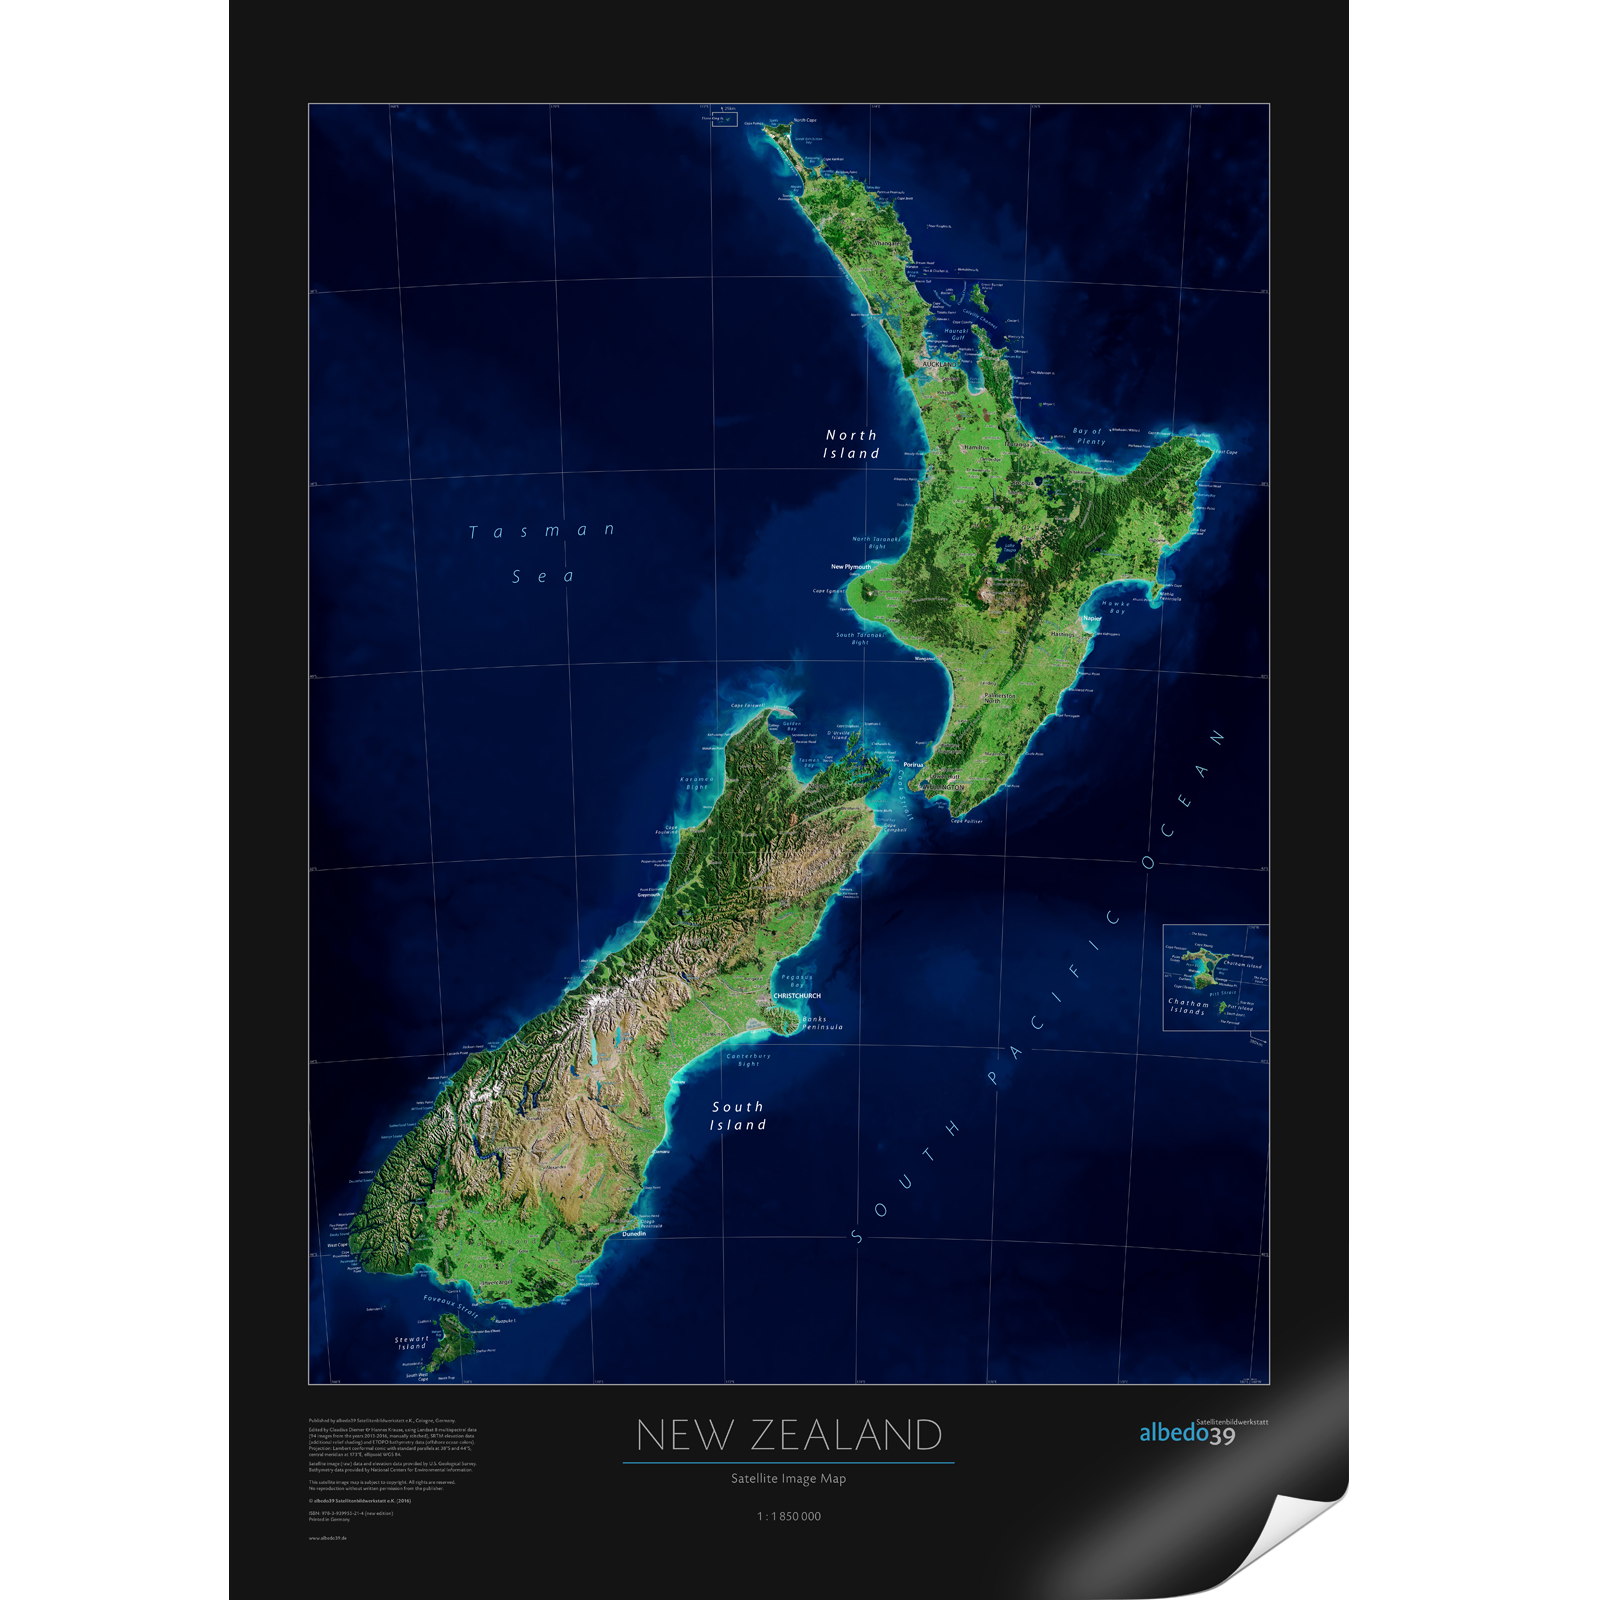 New Zealand Map Of The World.New Zealand Satellite Image Poster